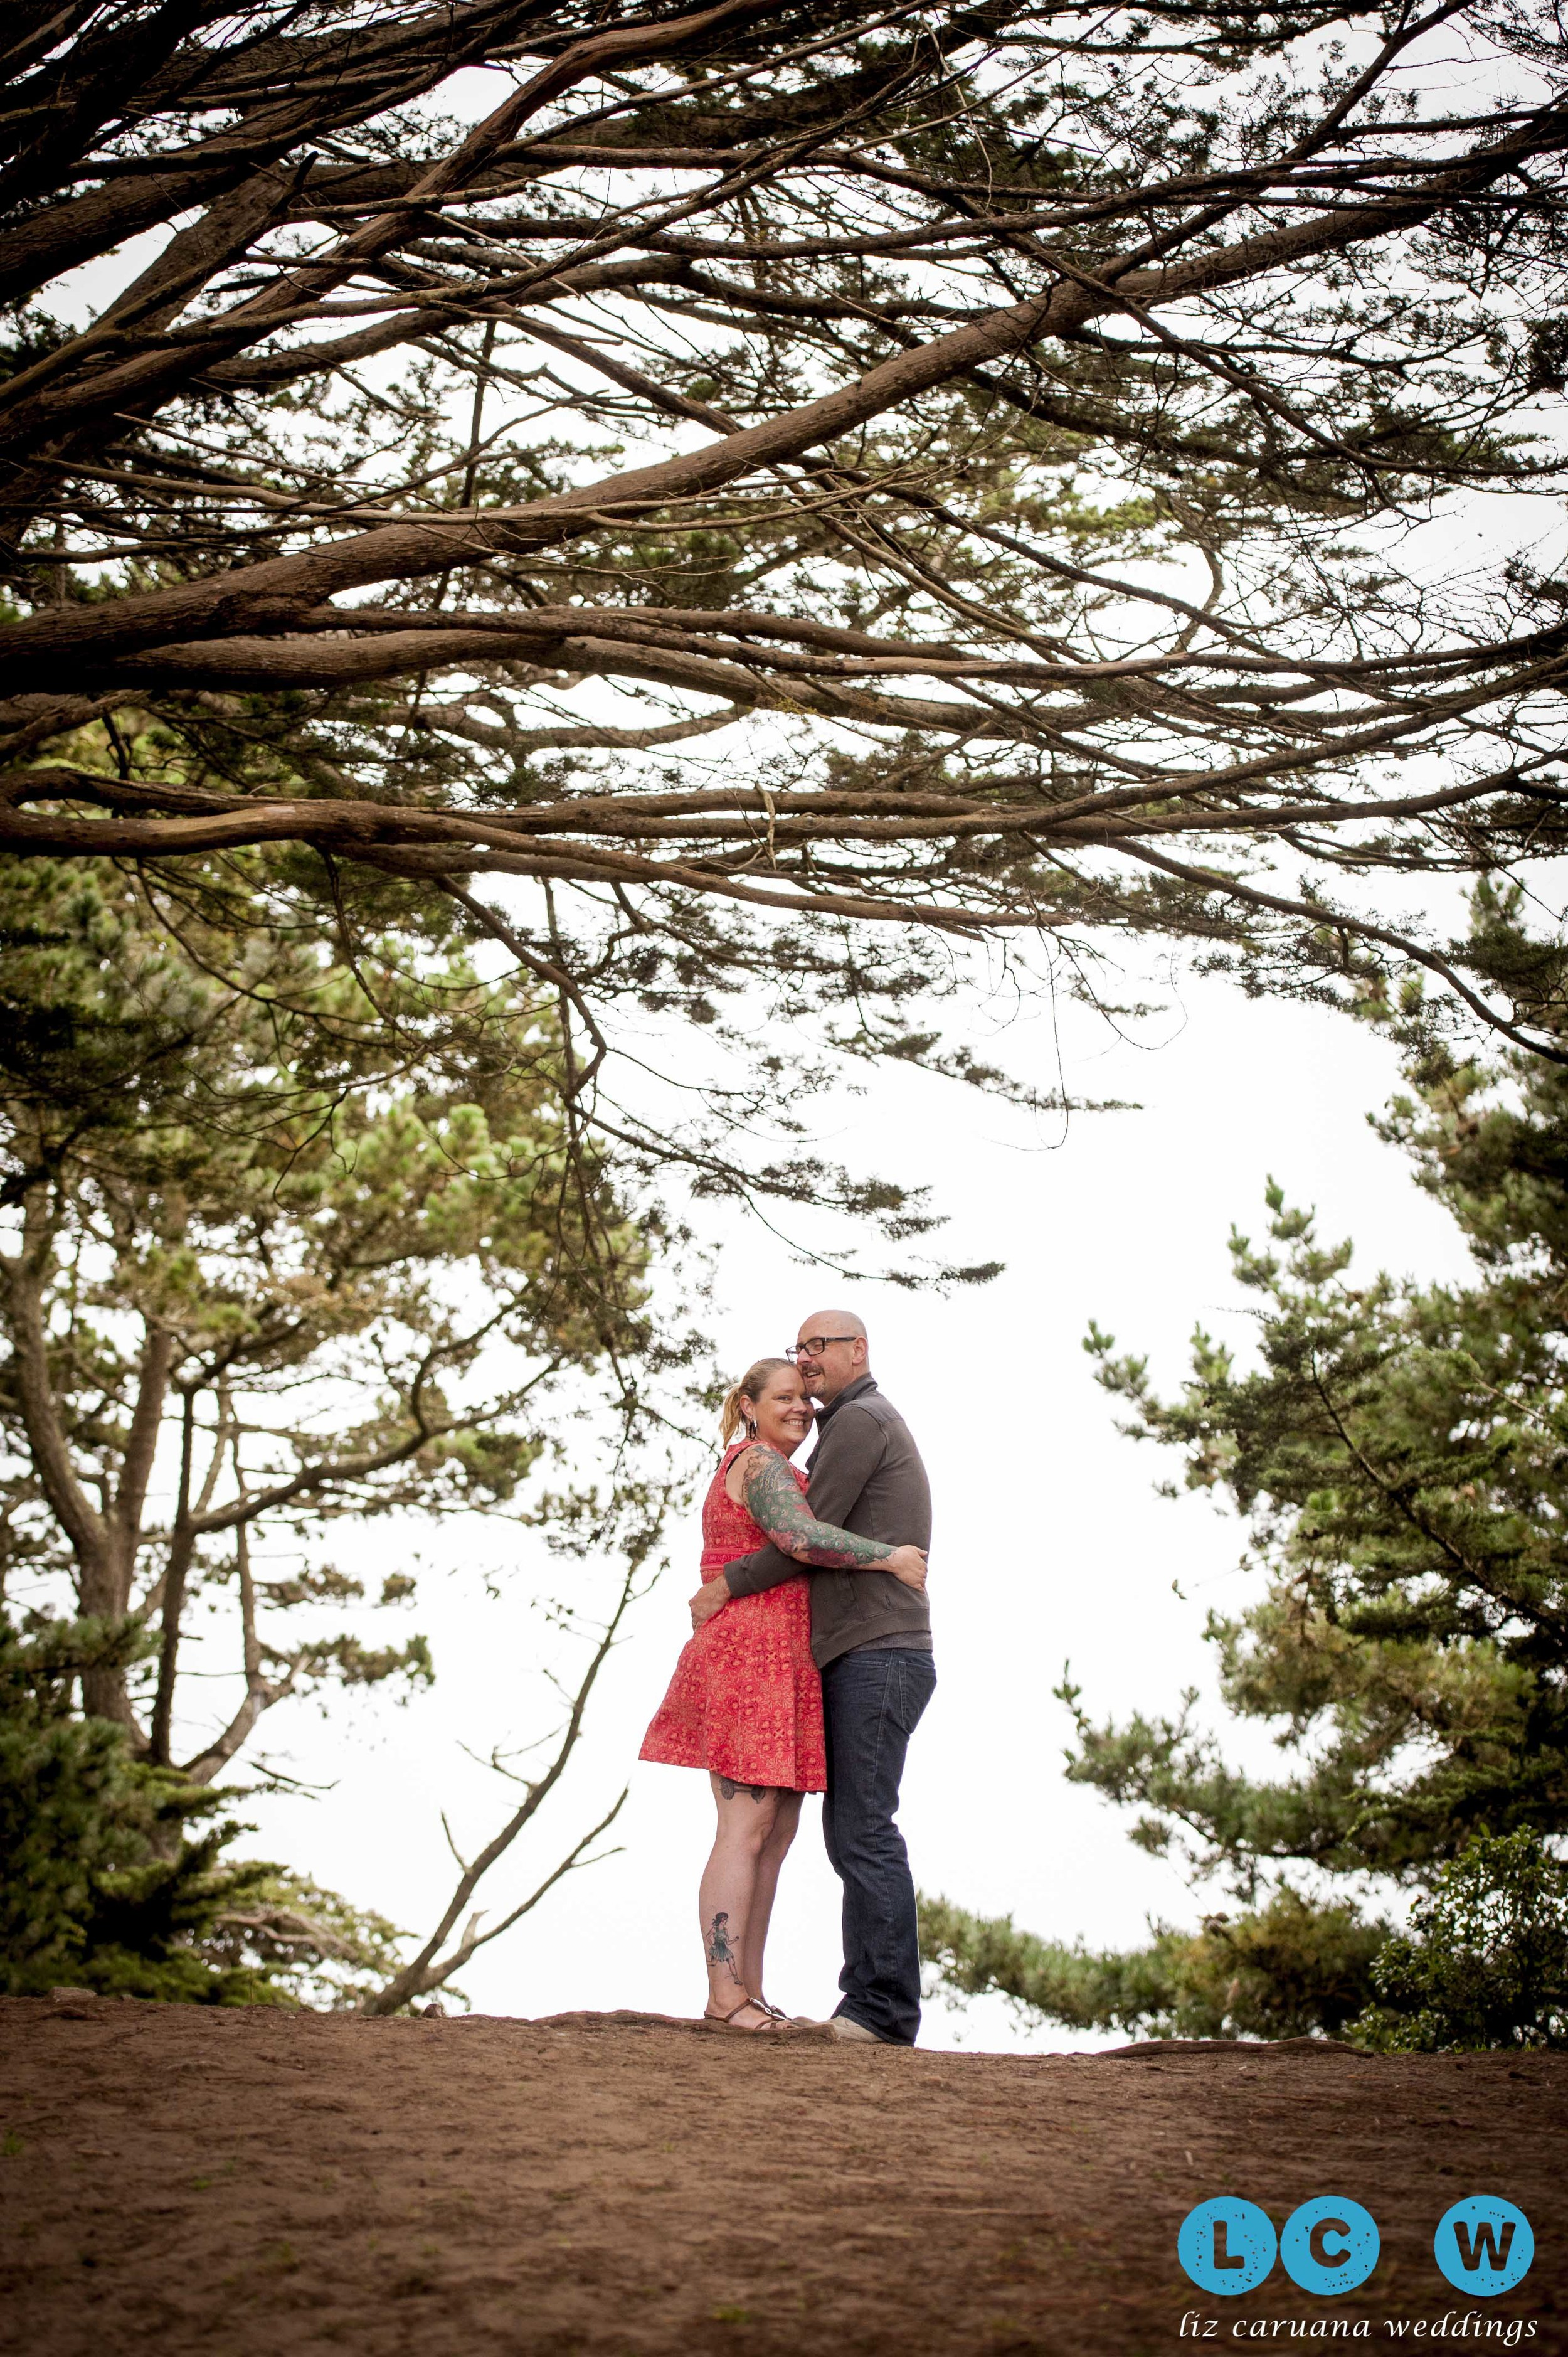 photojournalistic-sanfrancisco-wedding-photographer-lizcaruanaweddings